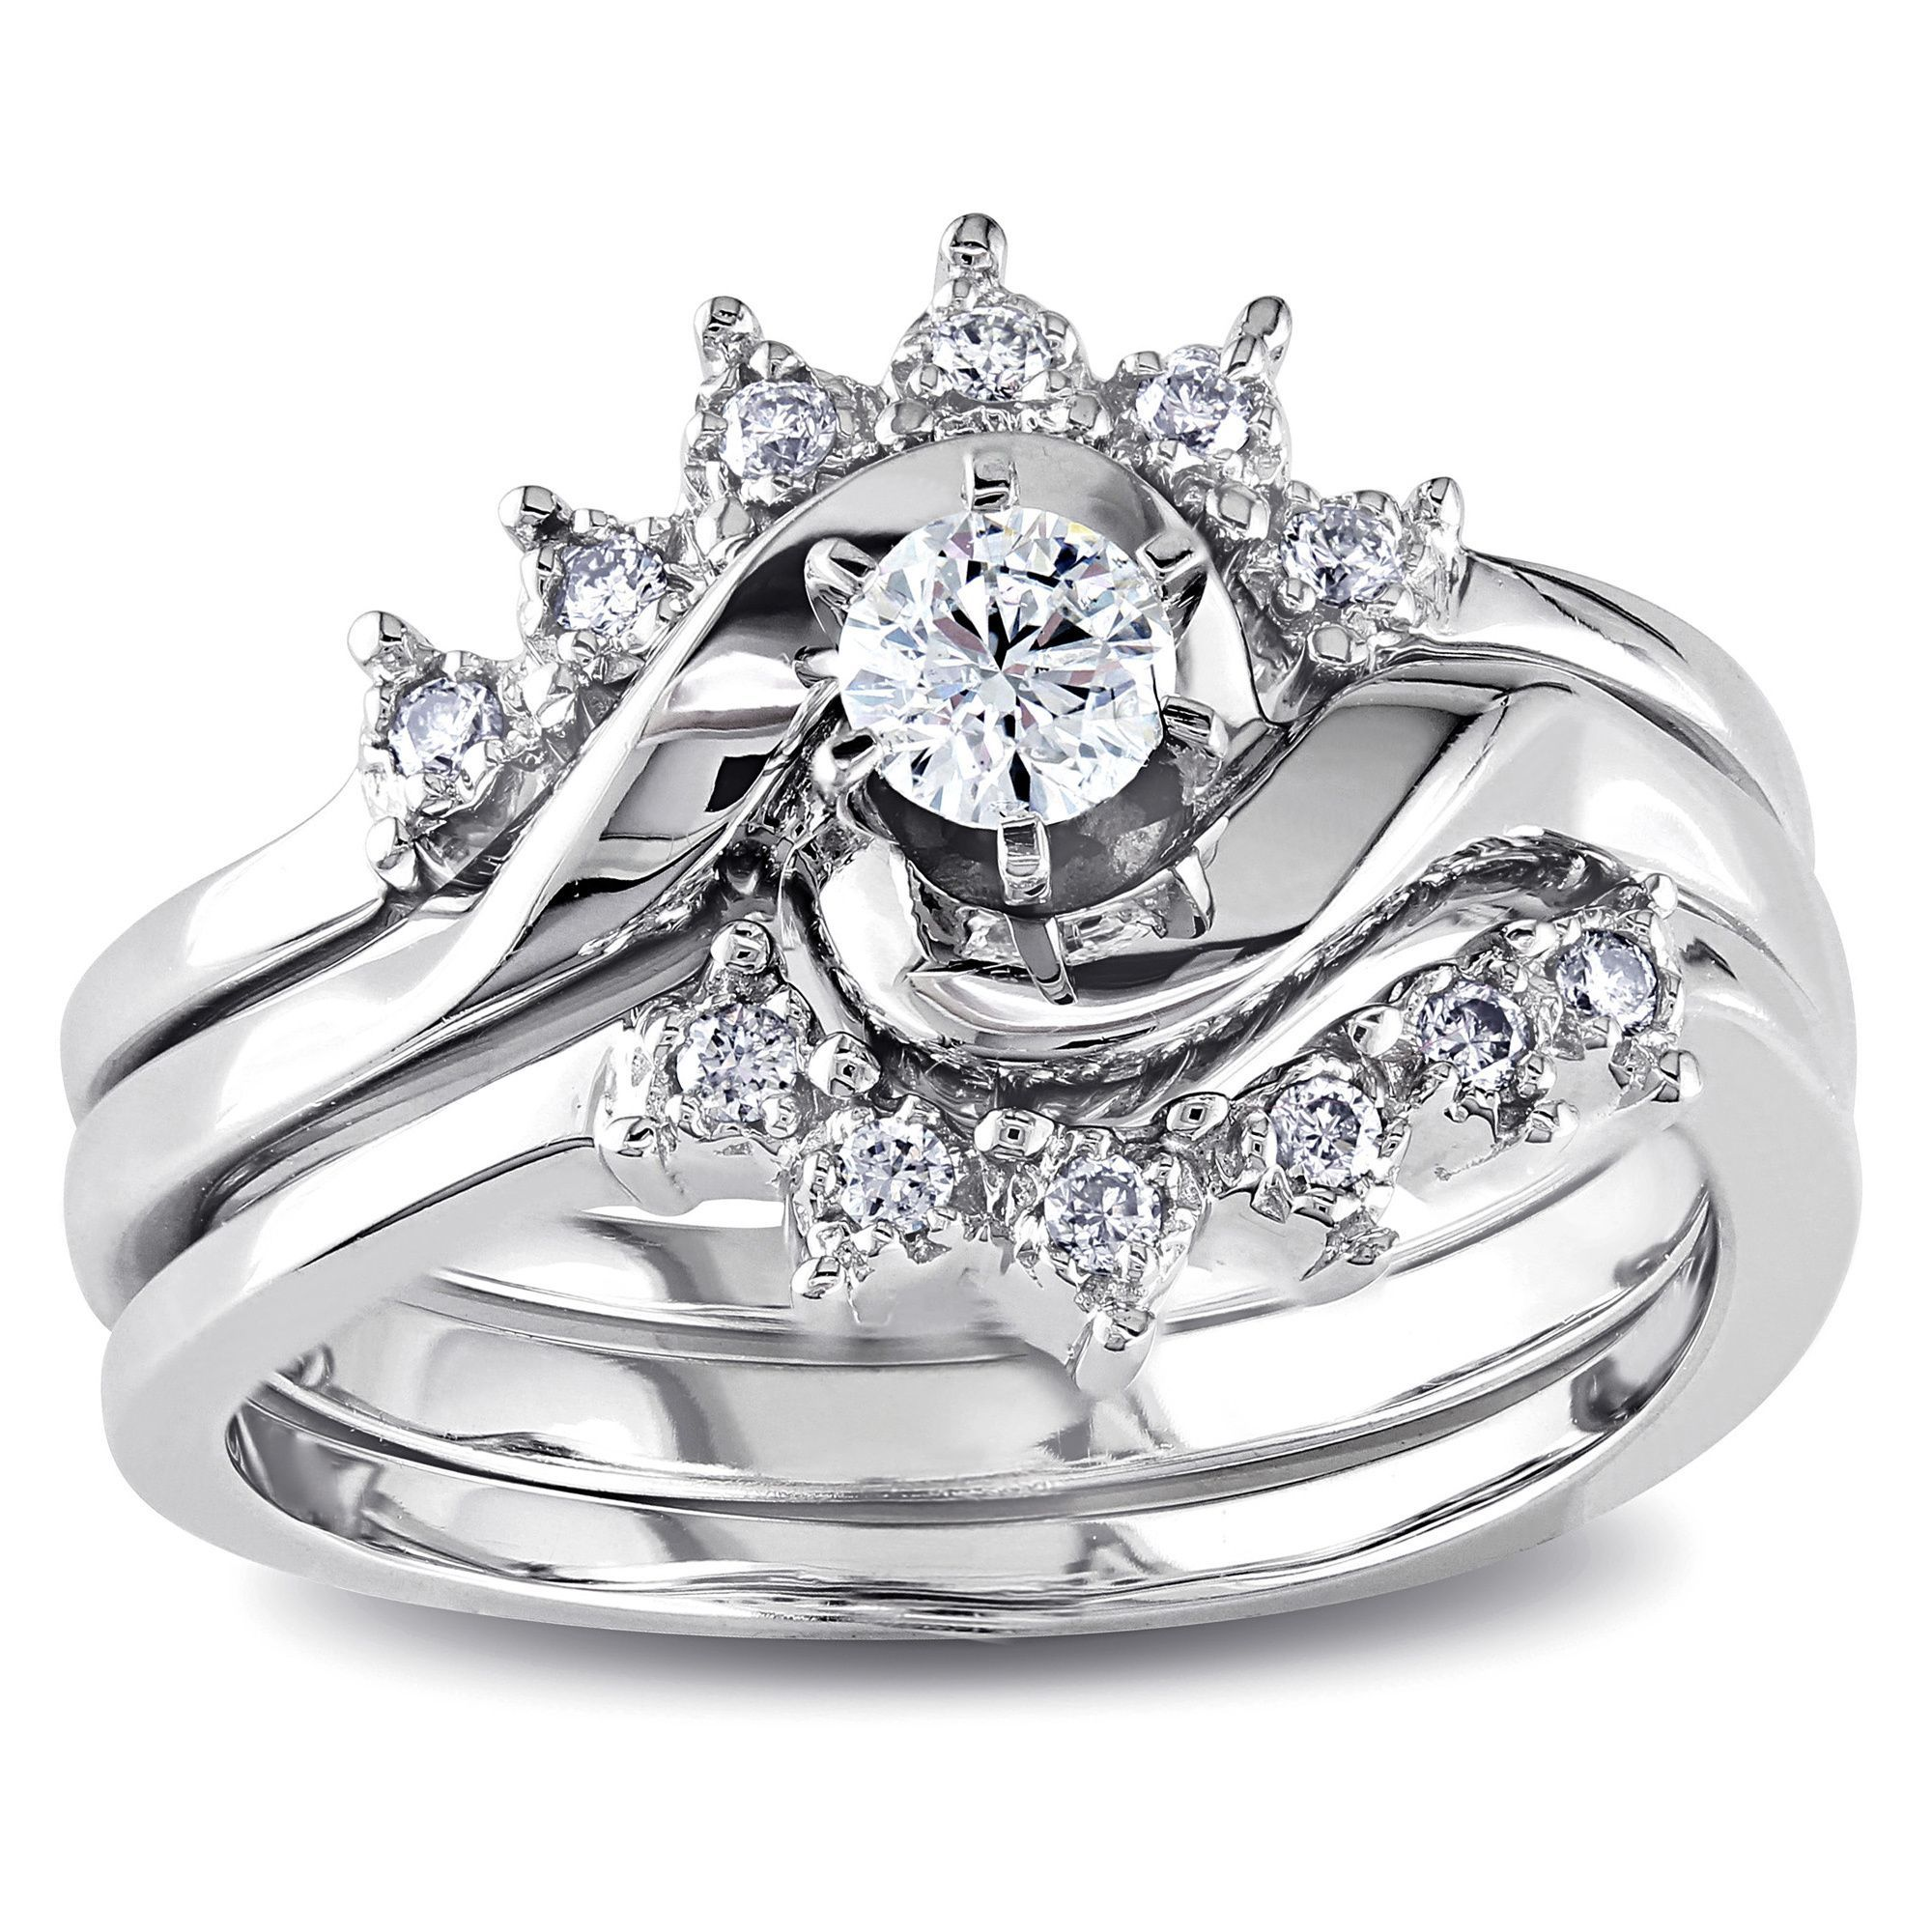 The brilliant 16carat roundcut center diamond is prong set into a